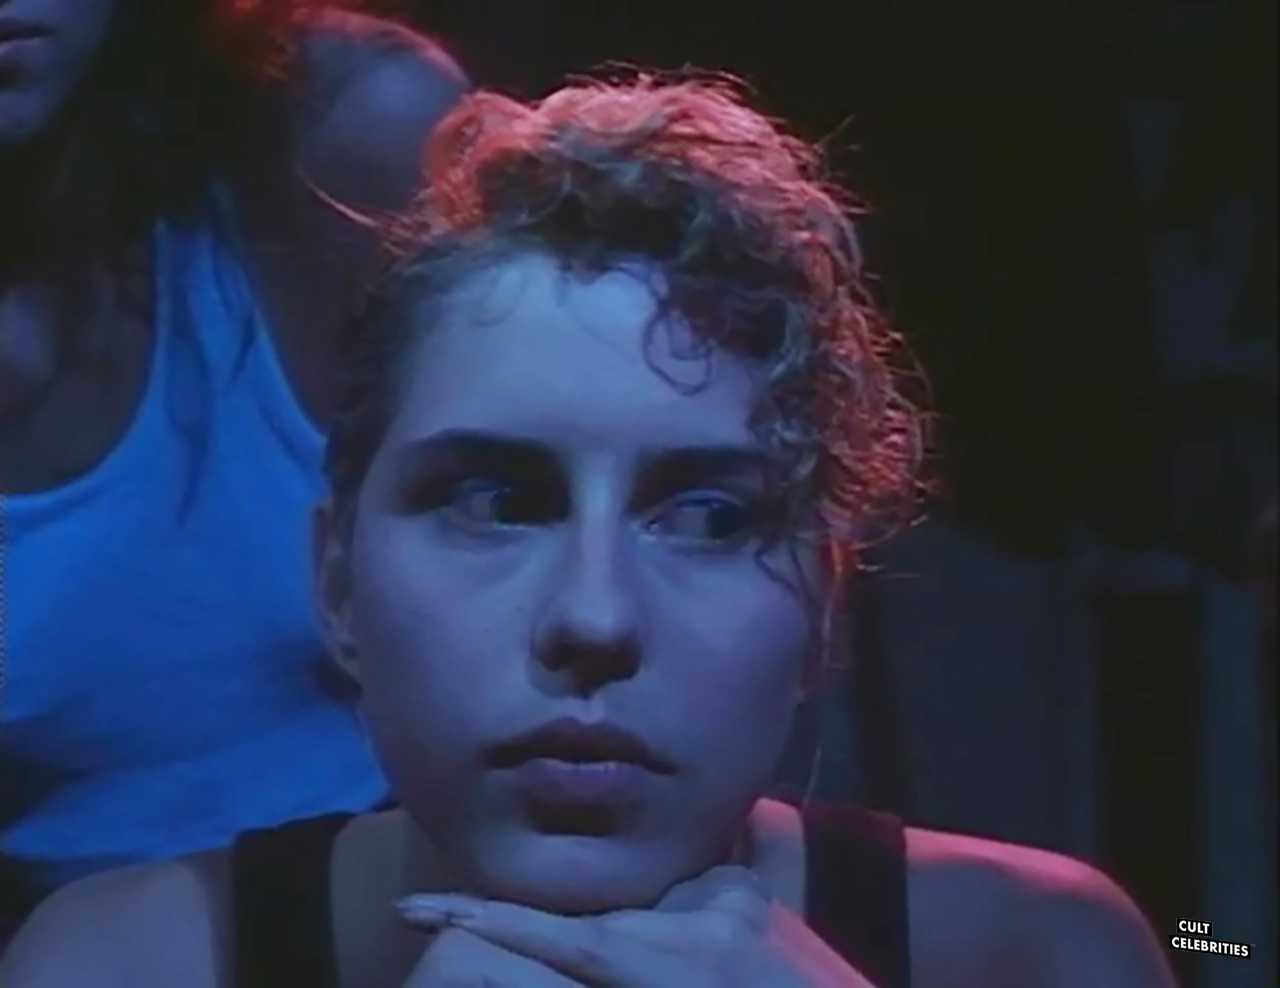 Debi Thibeault in Cemetery High (1988)